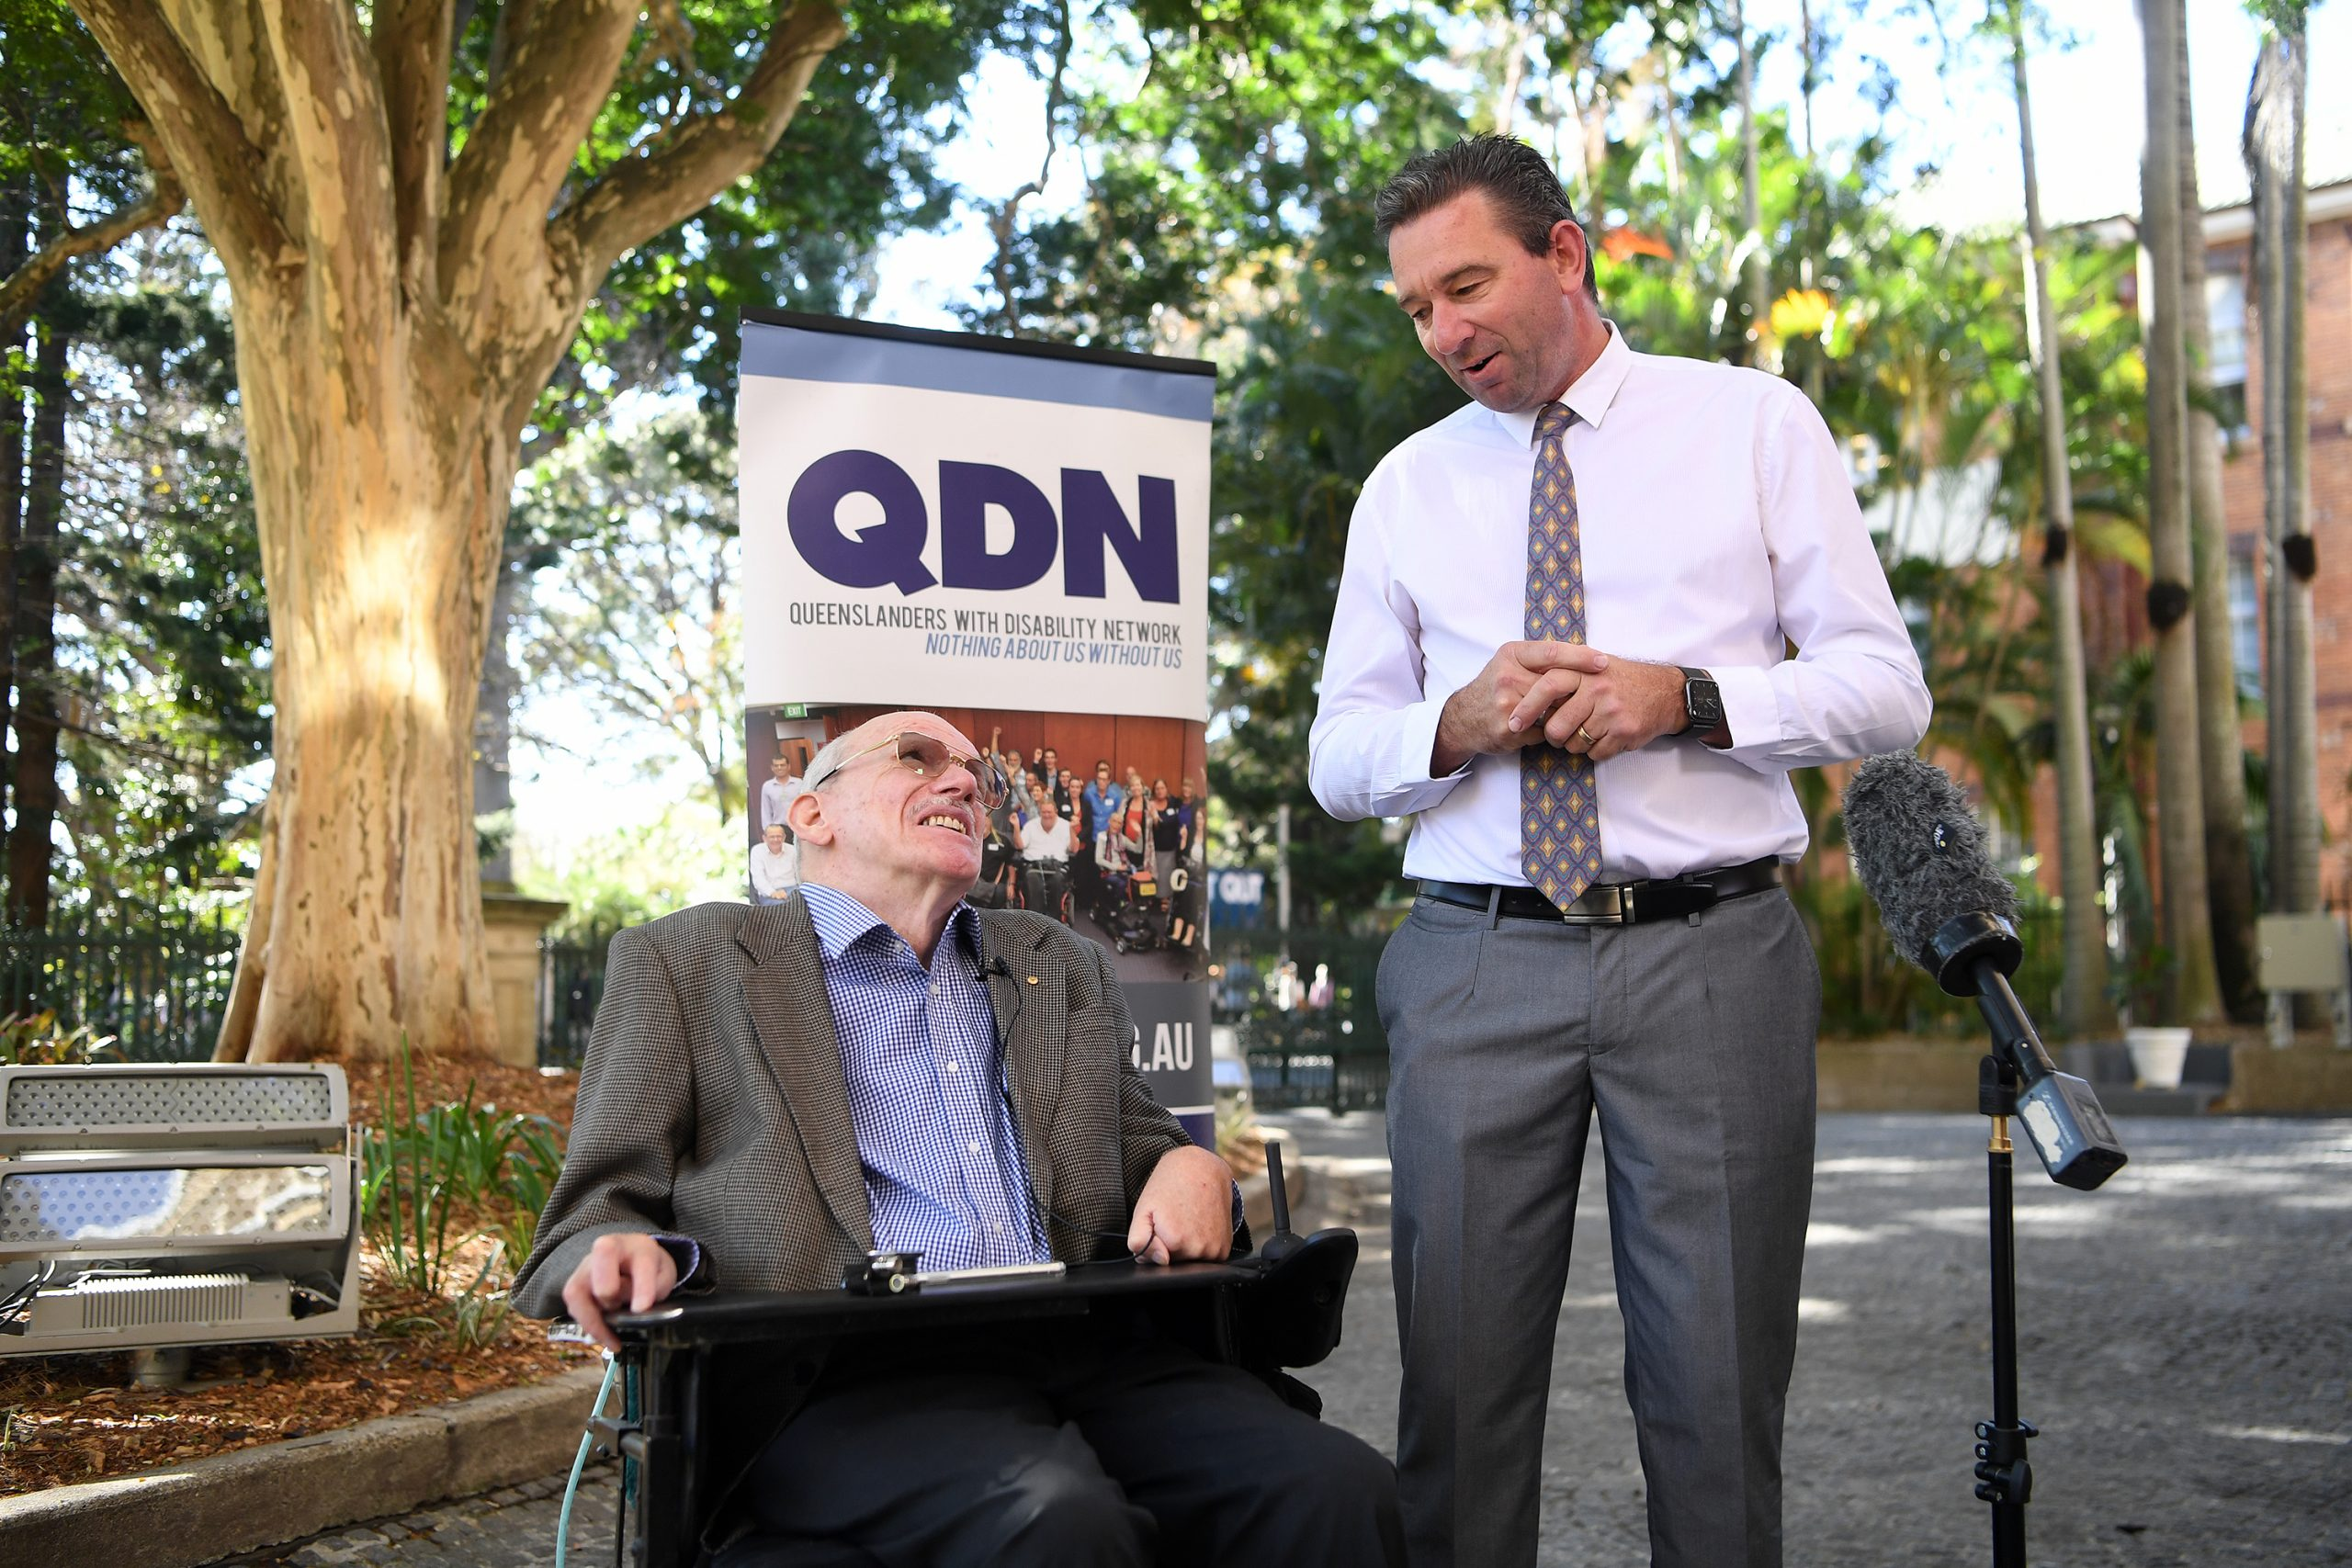 Two men outside under some trees. A man is in a wheelchair looking up at another man who is standing. There is a microphone in the foreground.